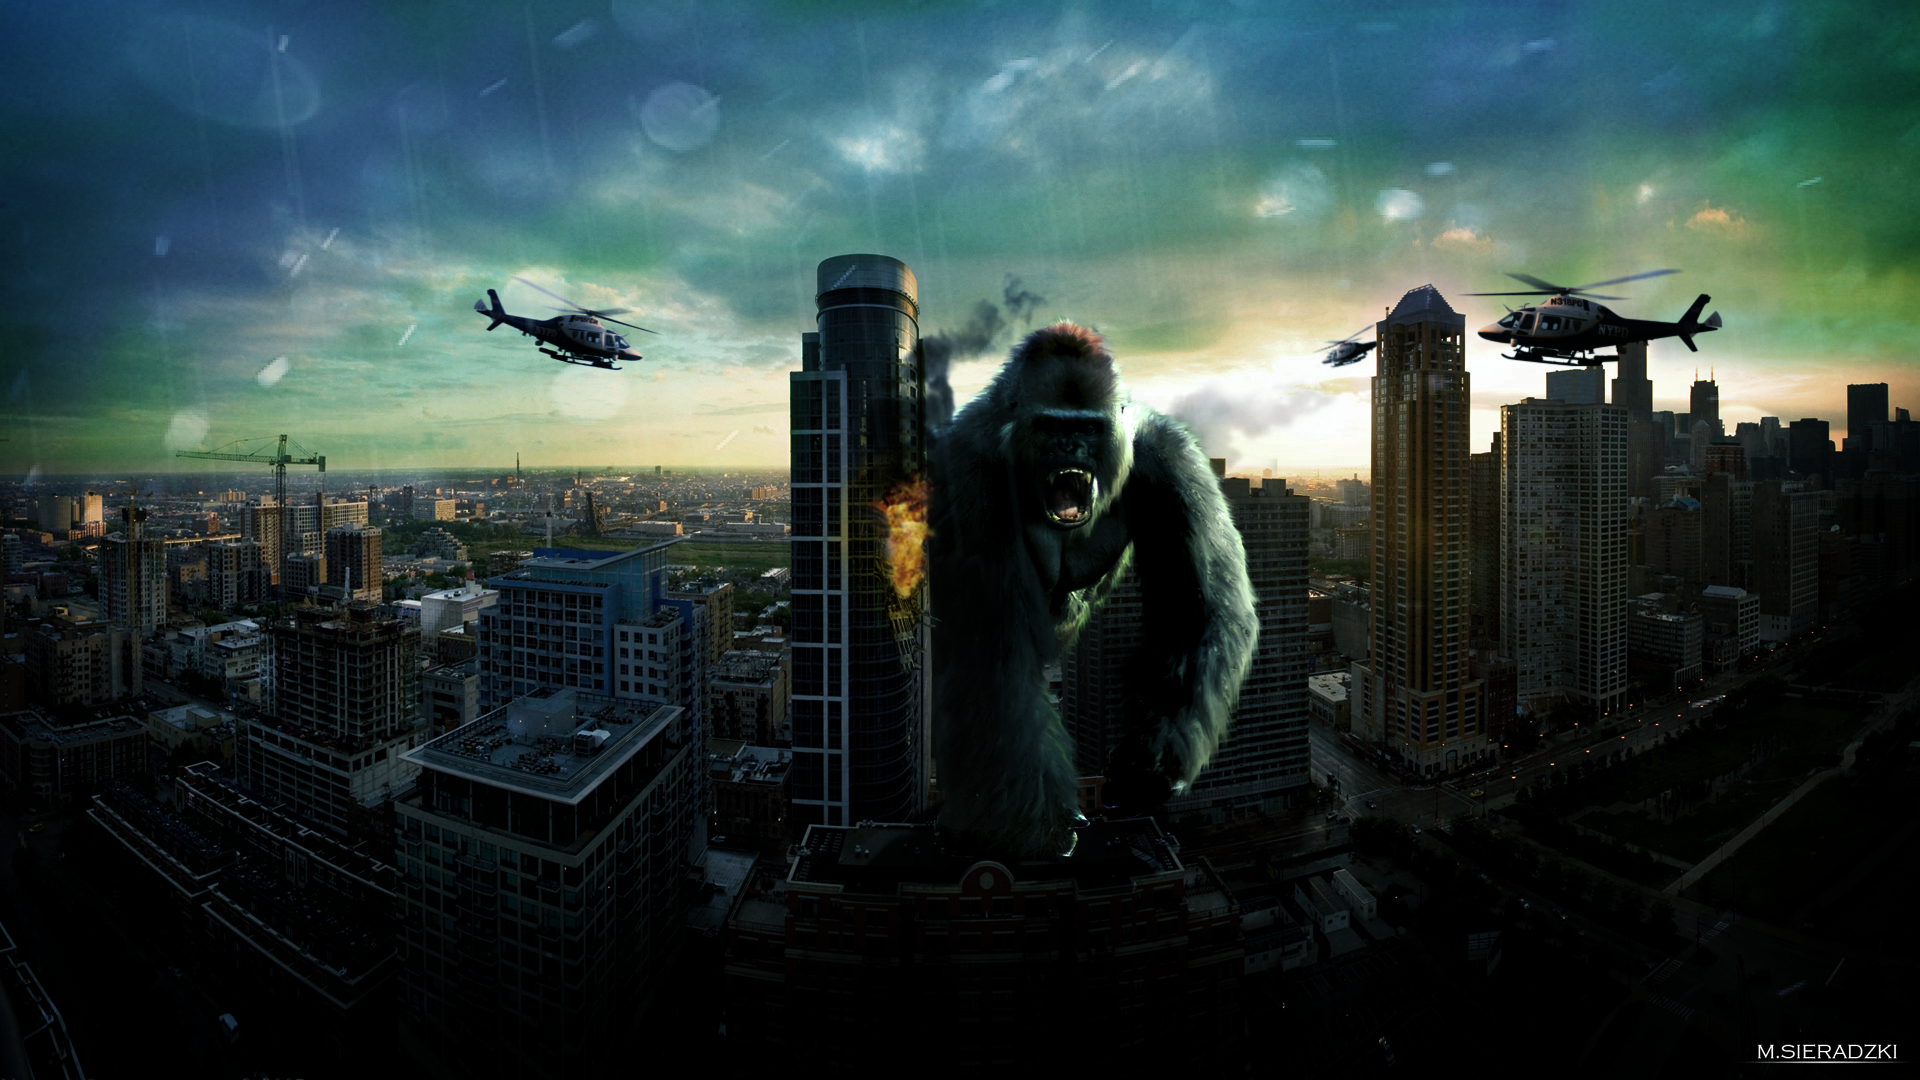 King kong pictures wallpaper wallpapersafari - King kong 2005 hd wallpapers ...